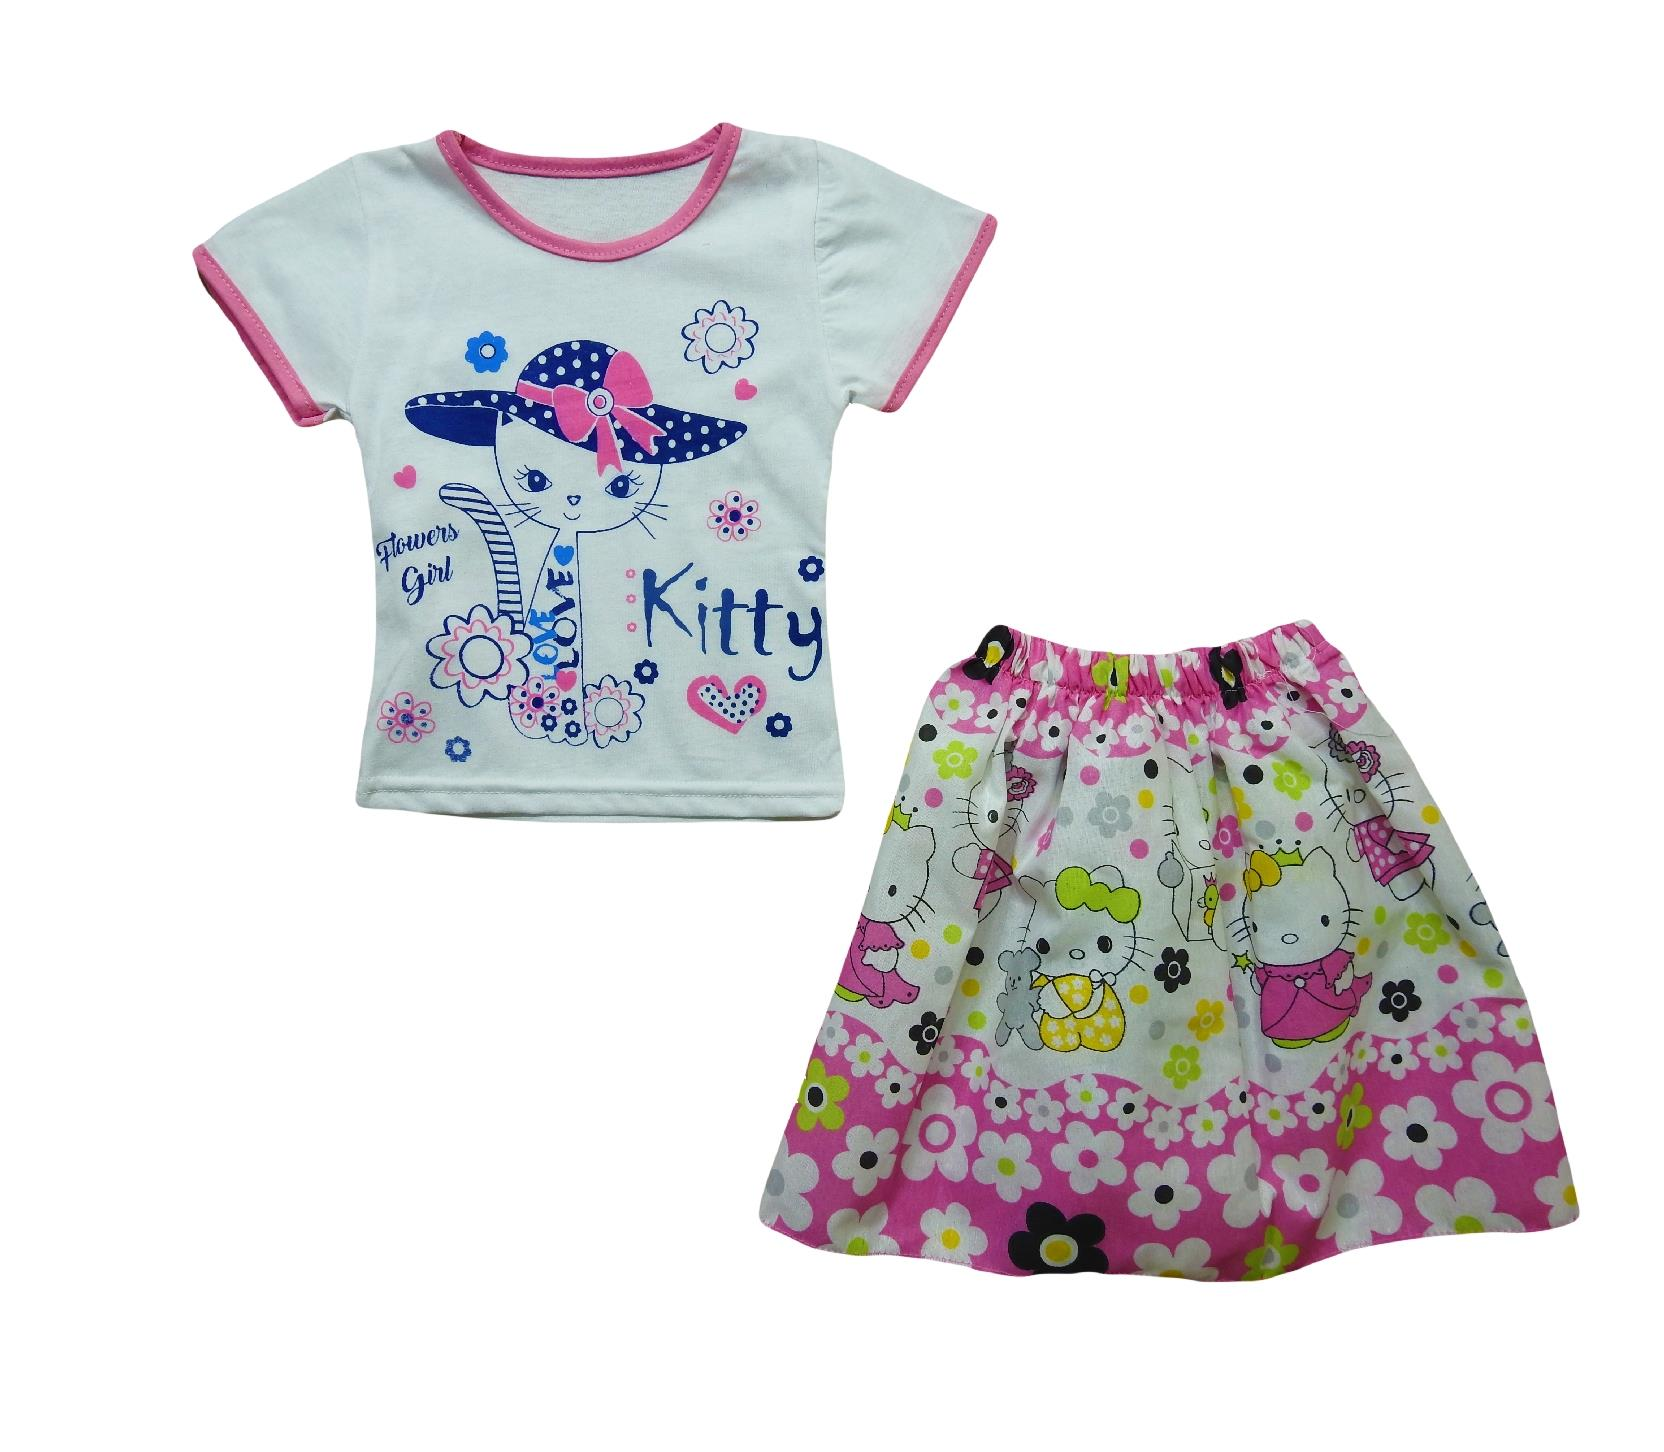 306 Wholesale kitty printed t shirt with skirt for girl baby clothes